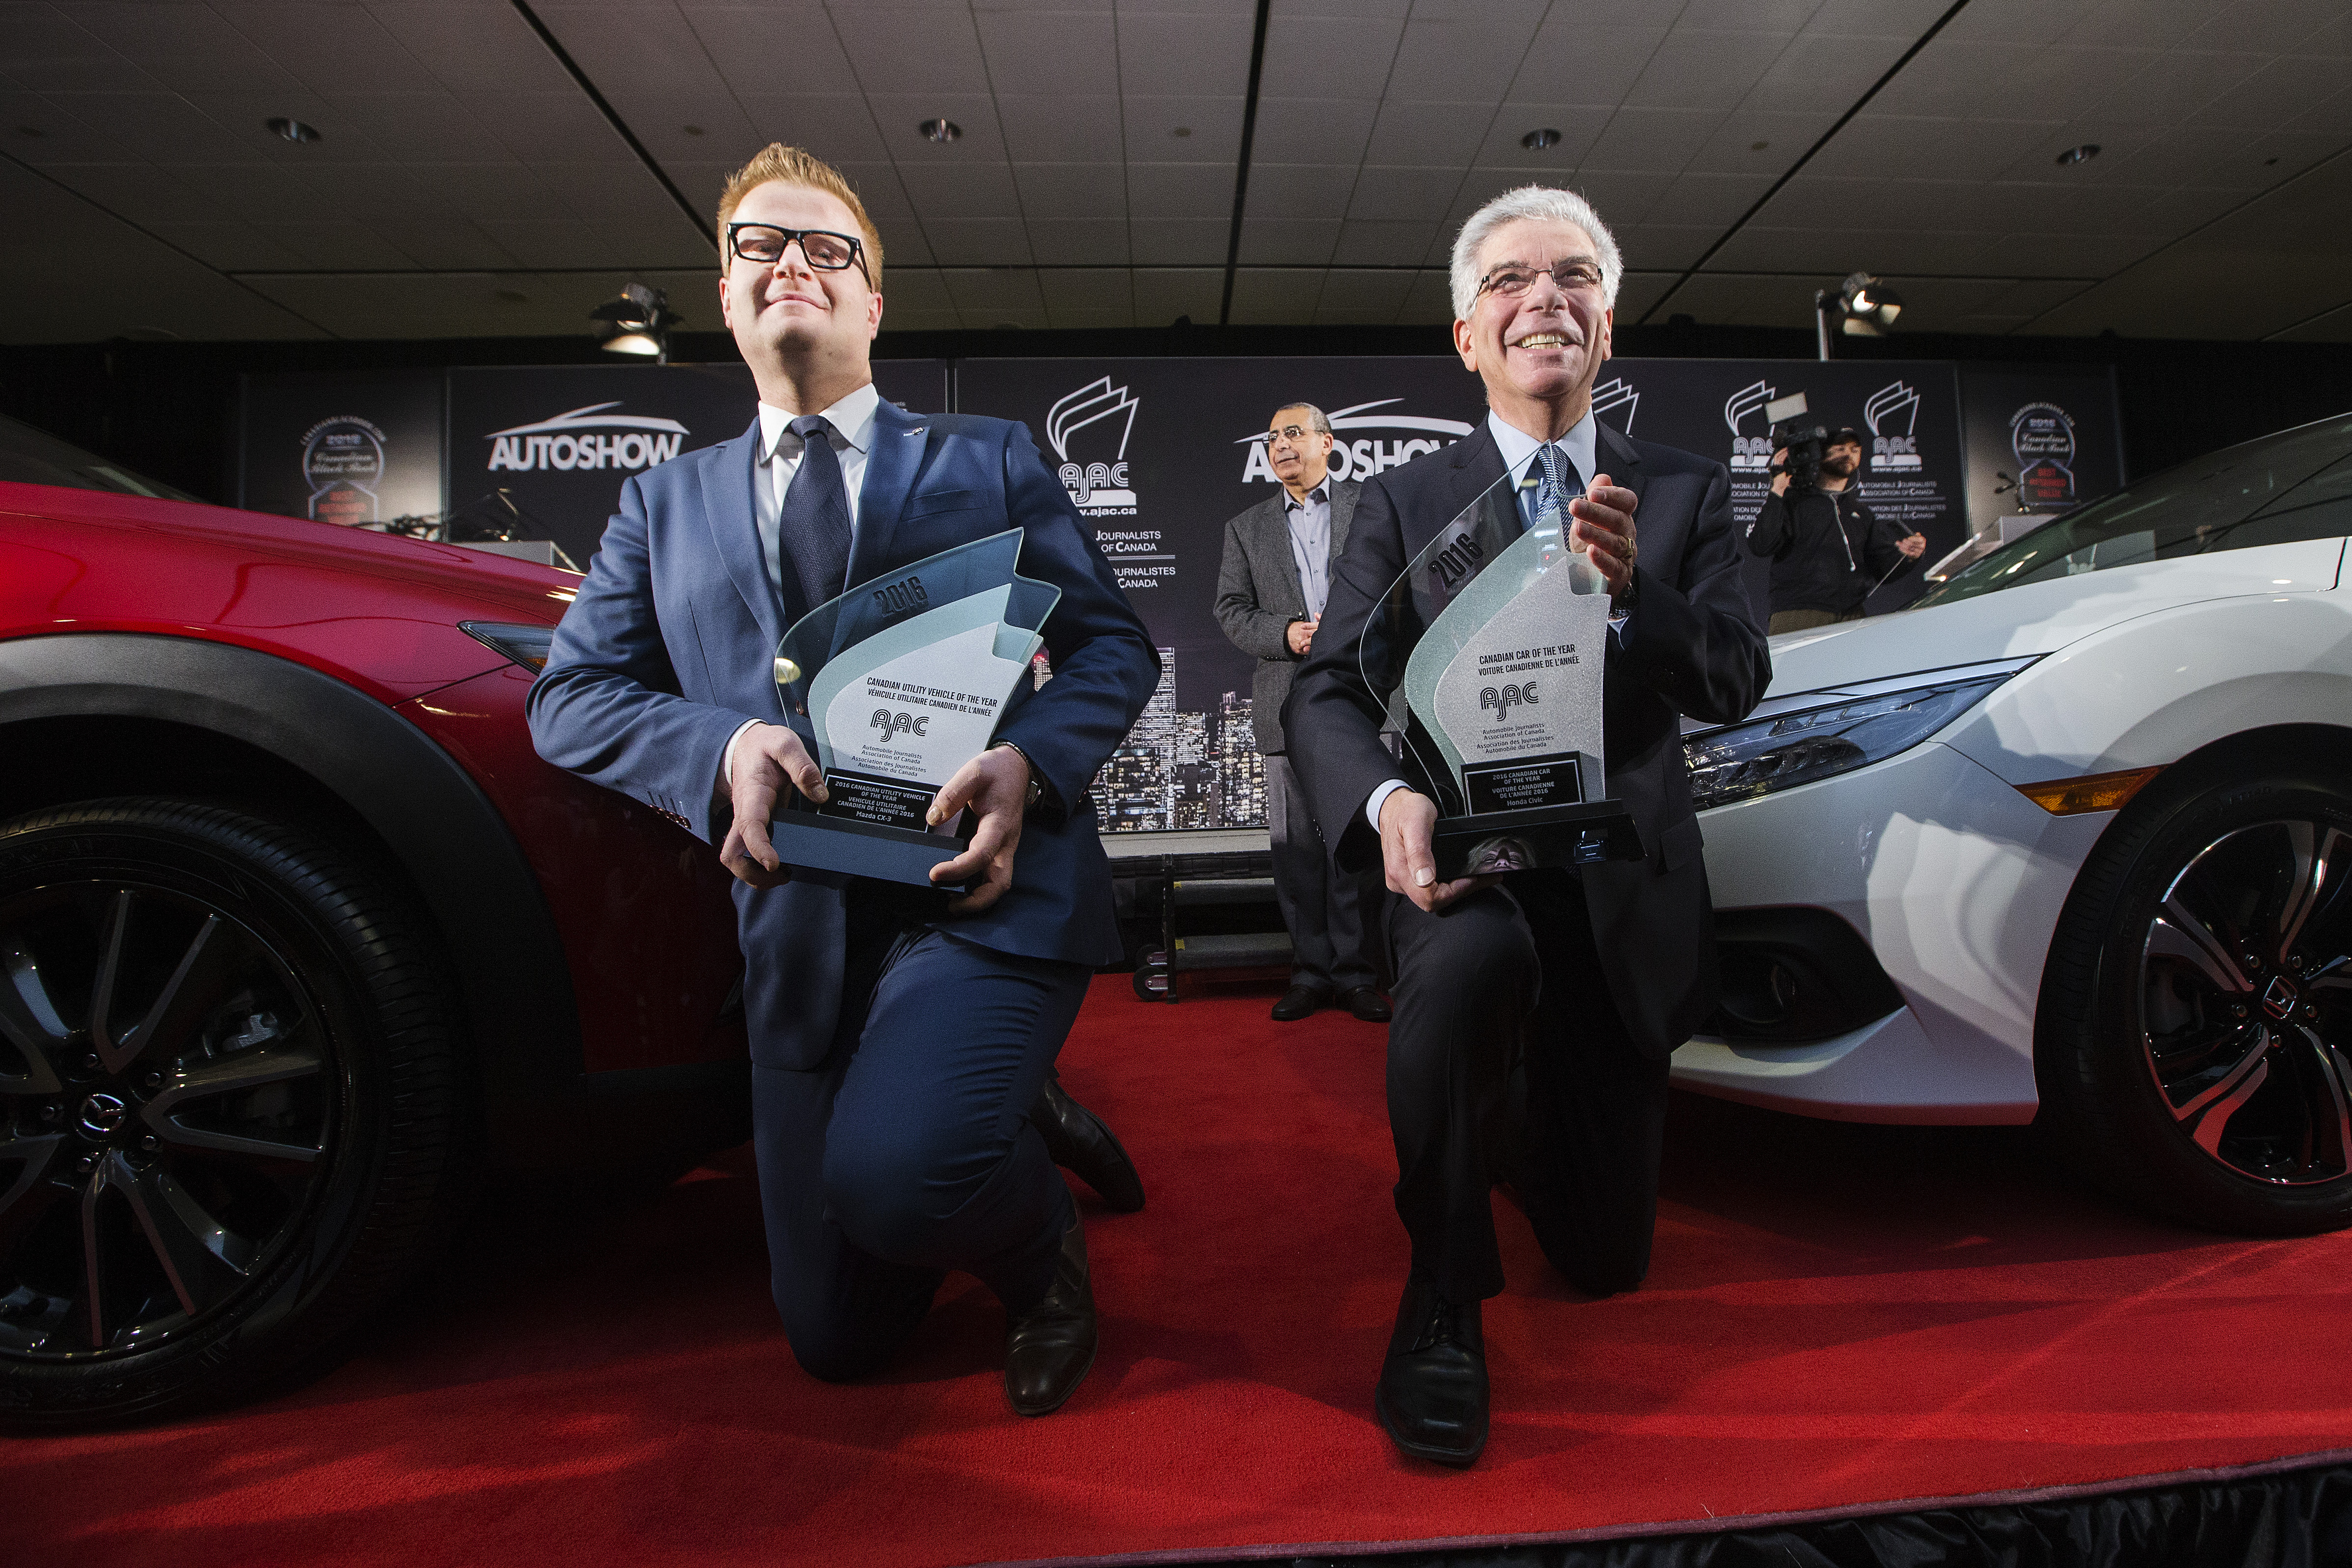 Vincent Reboul, Marketing Director at Mazda Canada Inc.left, poses for a photo with the Mazda CX-3 which was declared the 2016 Canadian Utility of the Year and Honda President and CEO Jerry Chenkin, right, which was declared the 2016 Canadian Car of the Year (CCOTY).  (Photos By: Michelle Siu)